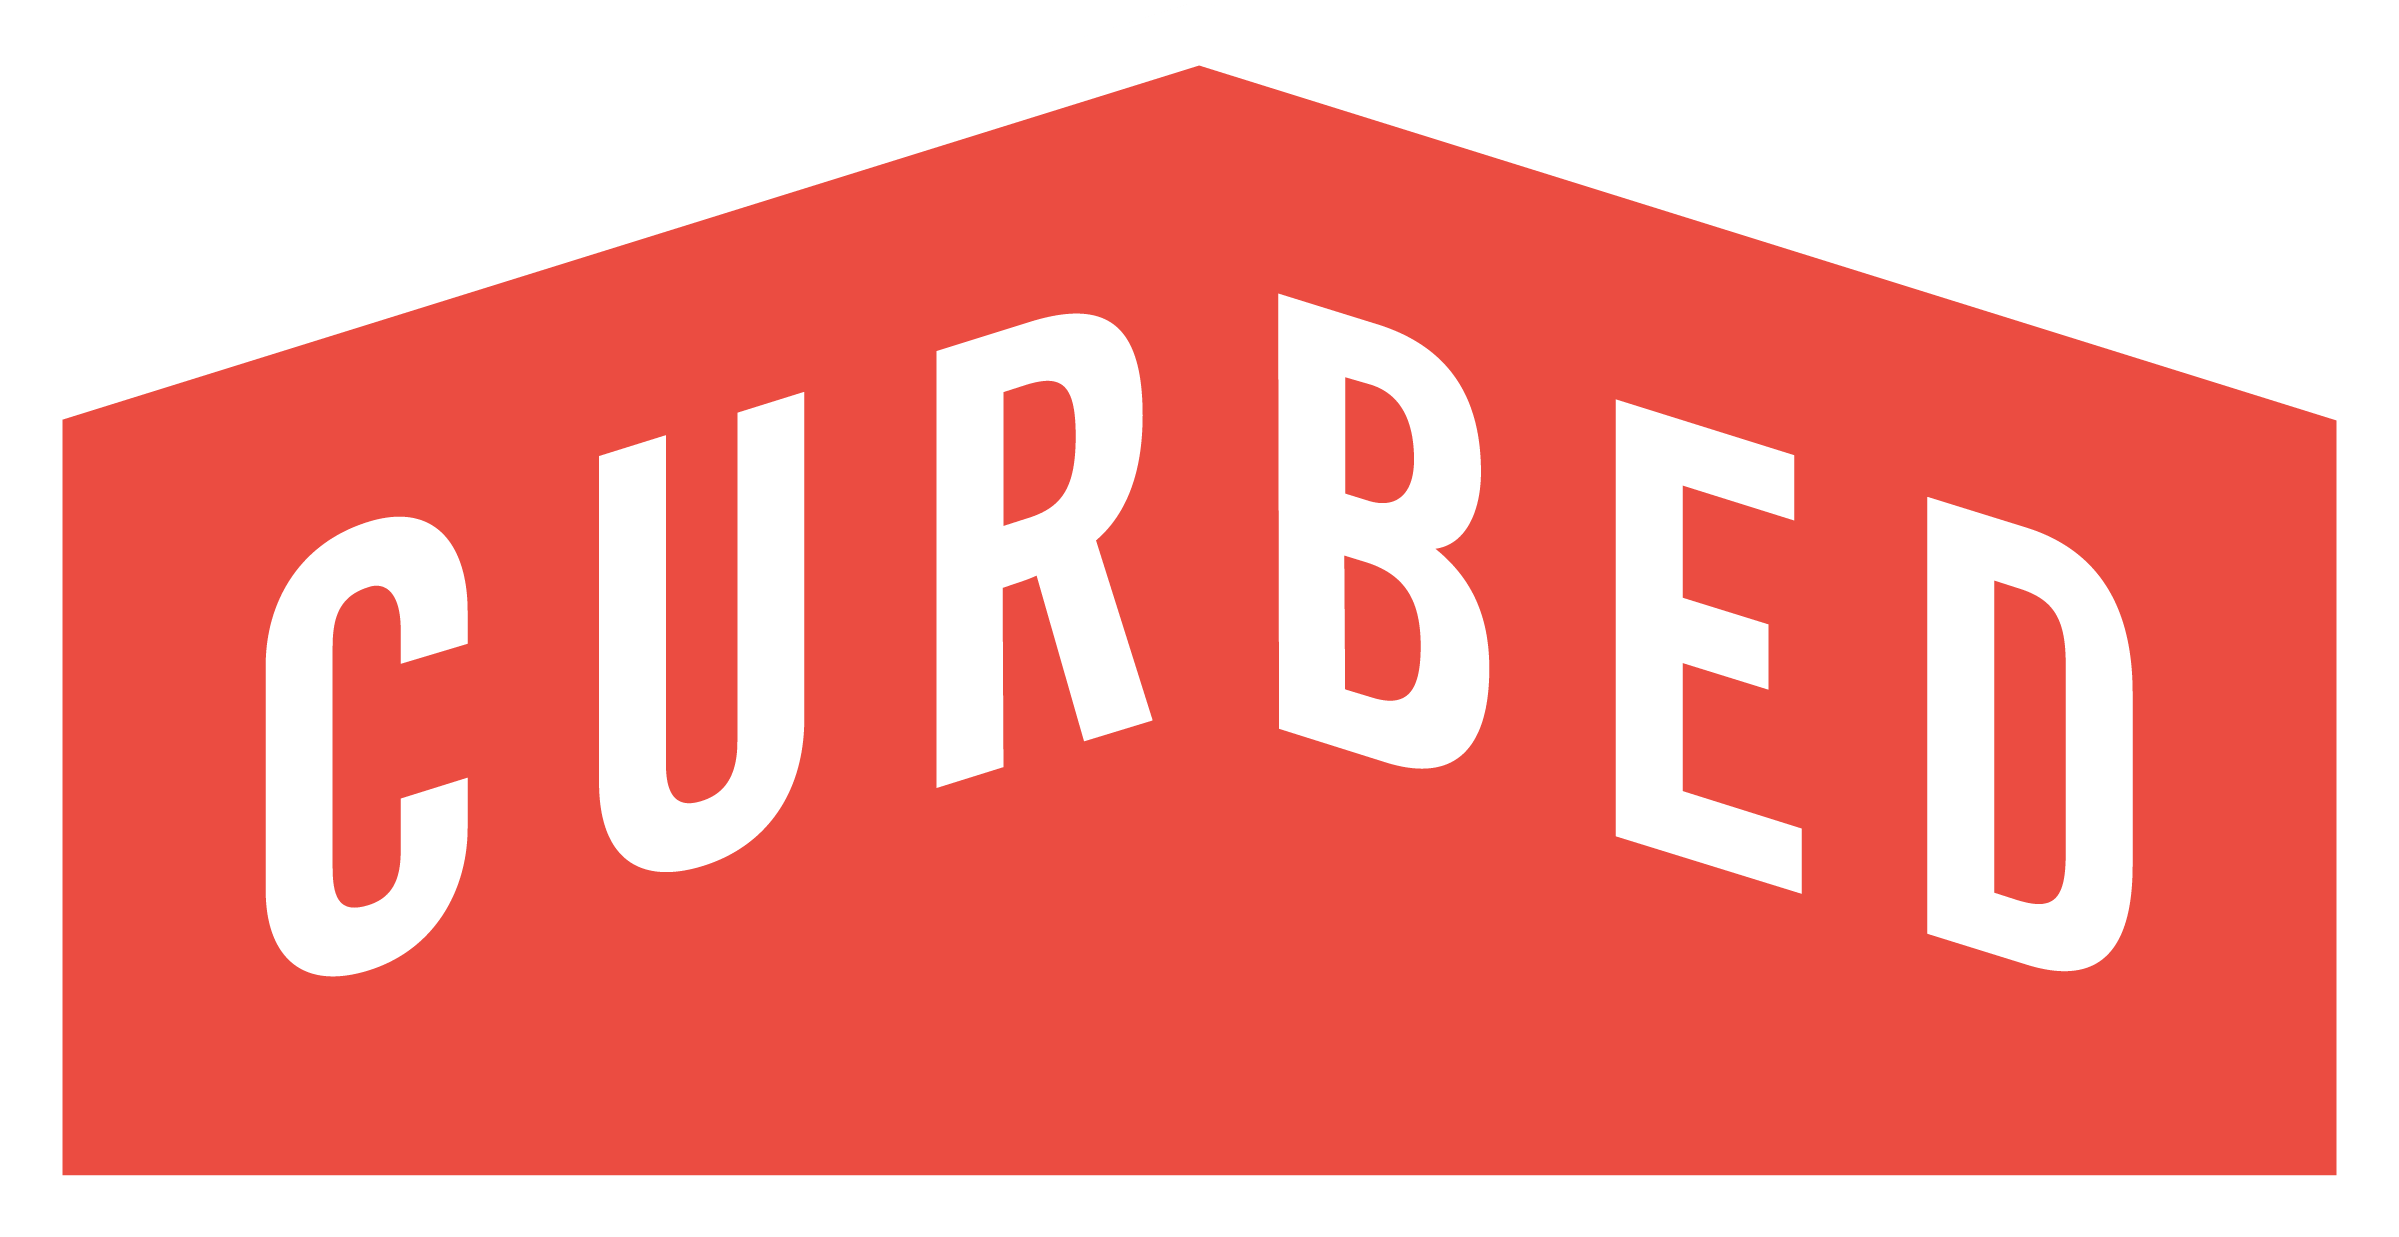 Curbed_logo-01.png